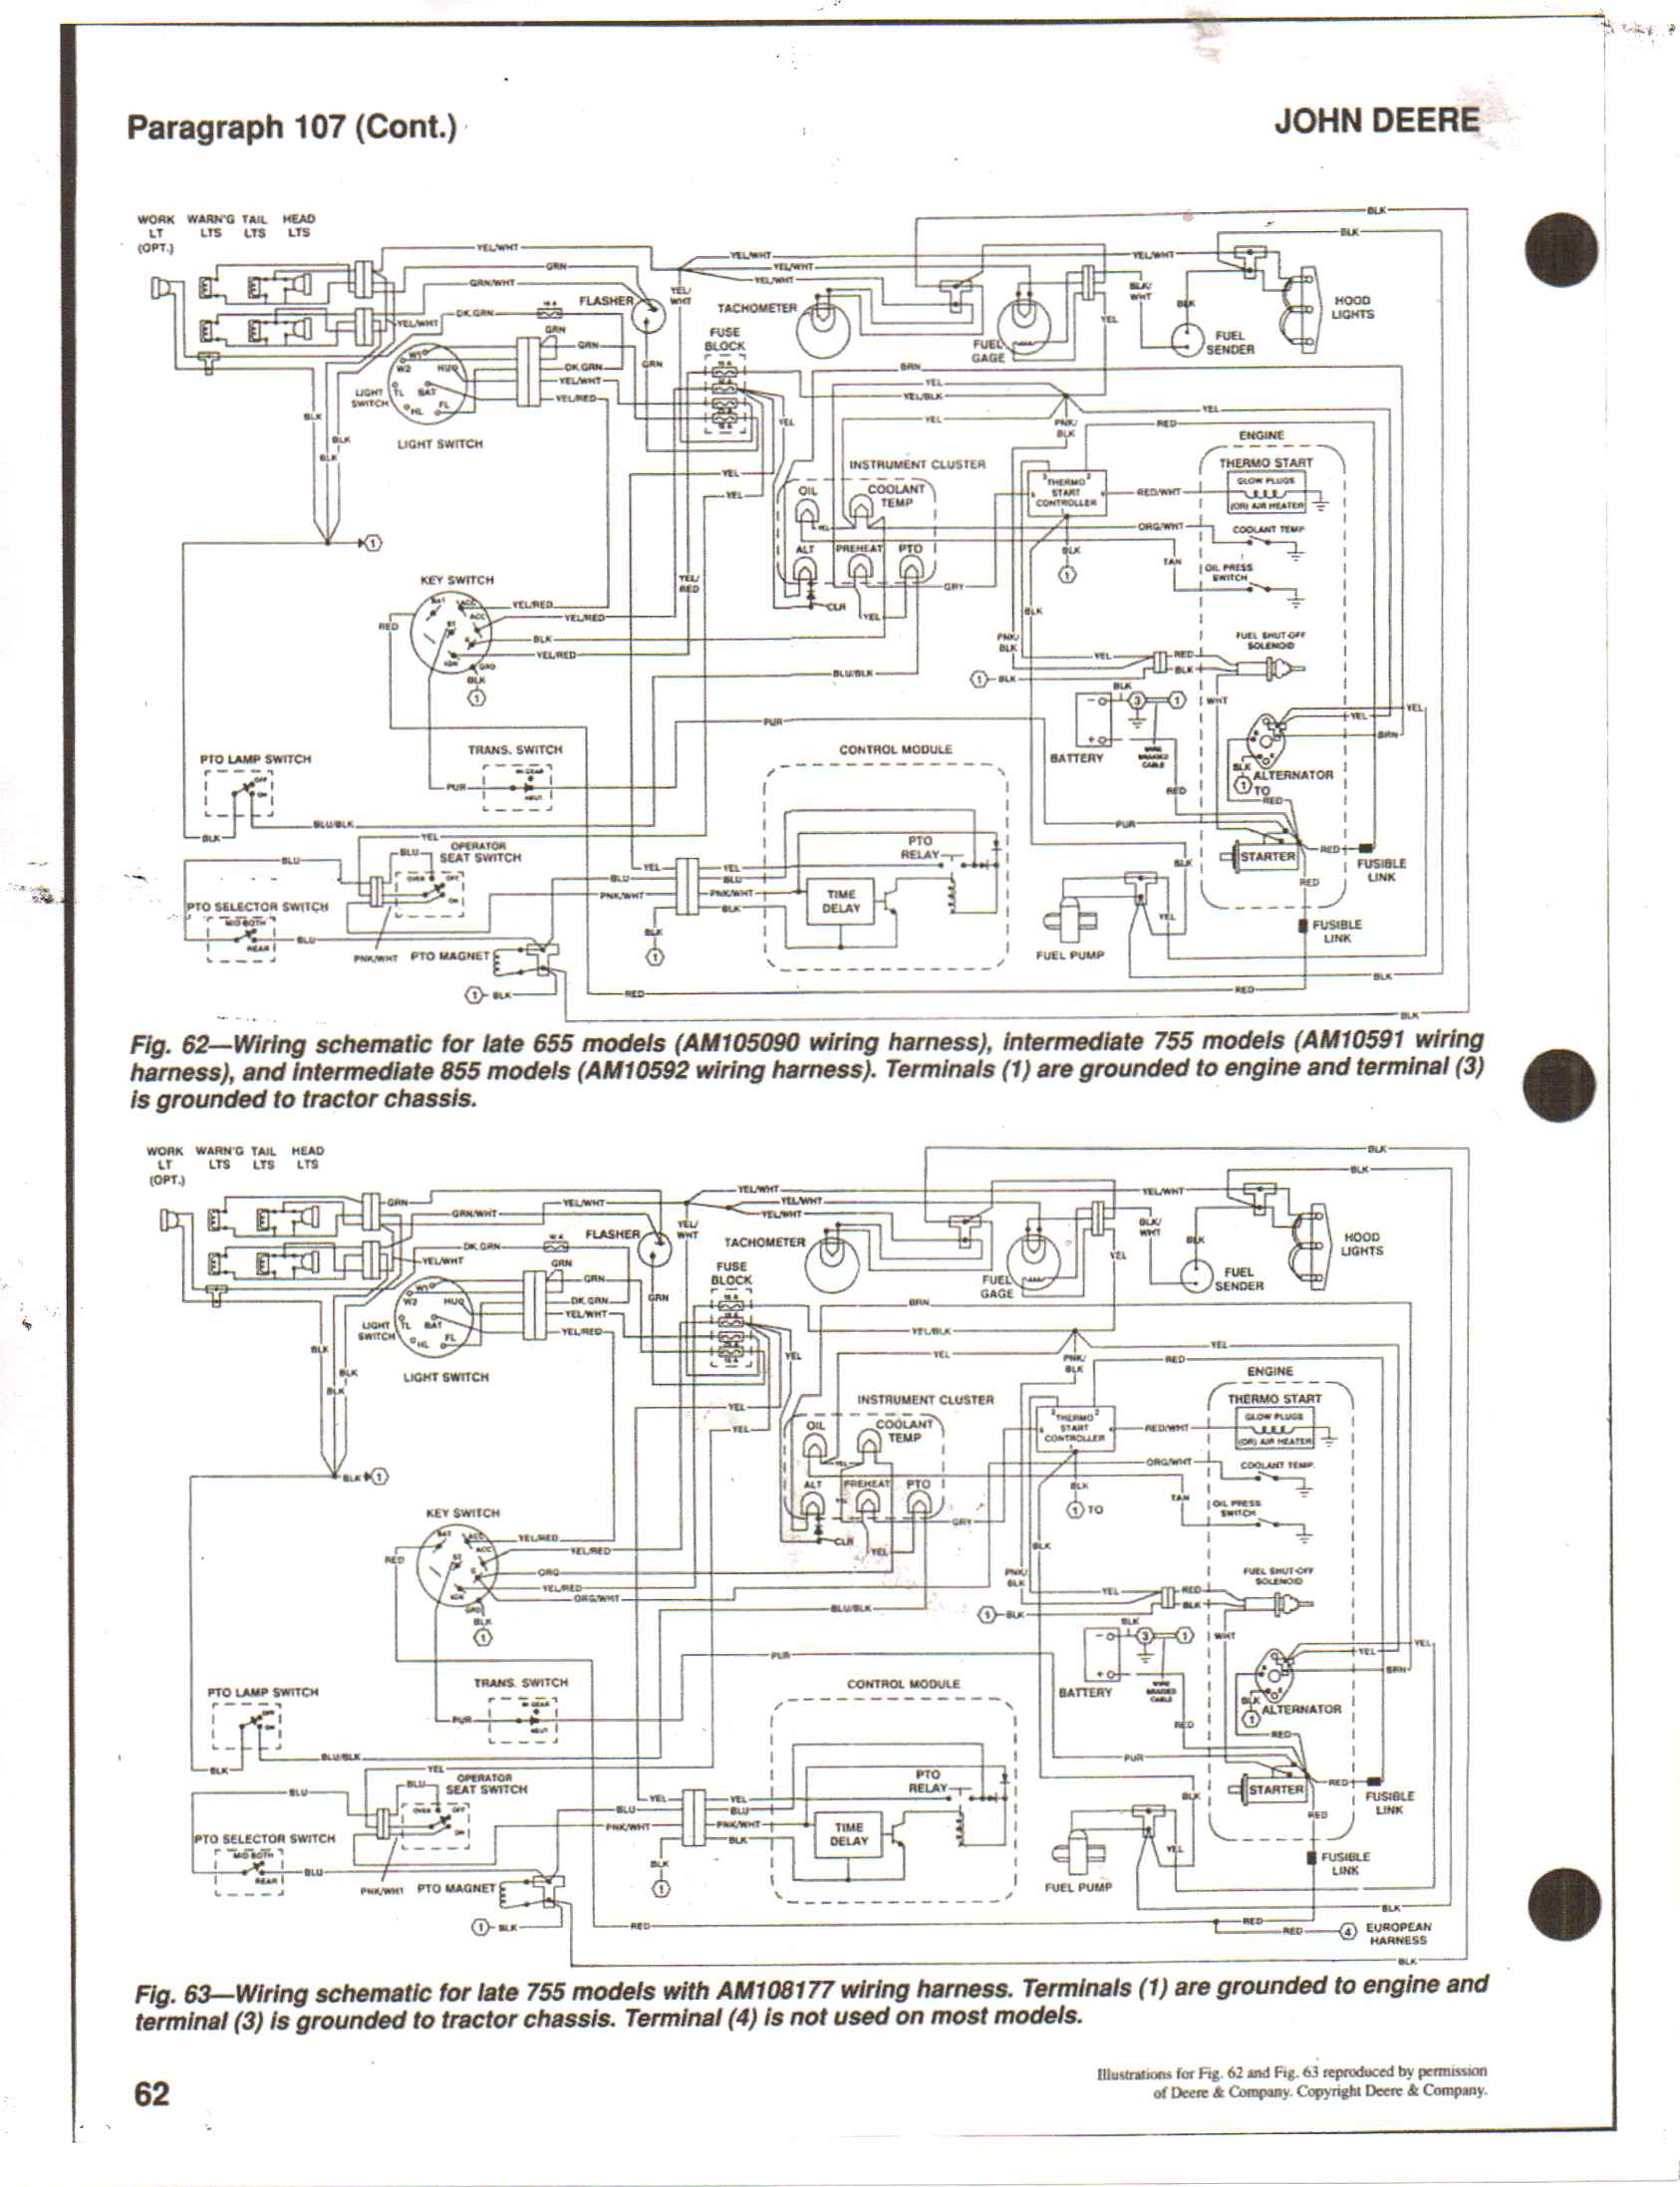 John Deere 855 Wiring Diagram Fuse Box 5310 I Have A Compact Tractor Won T Start With The Key But If Rh Justanswer Com 955 Schematic